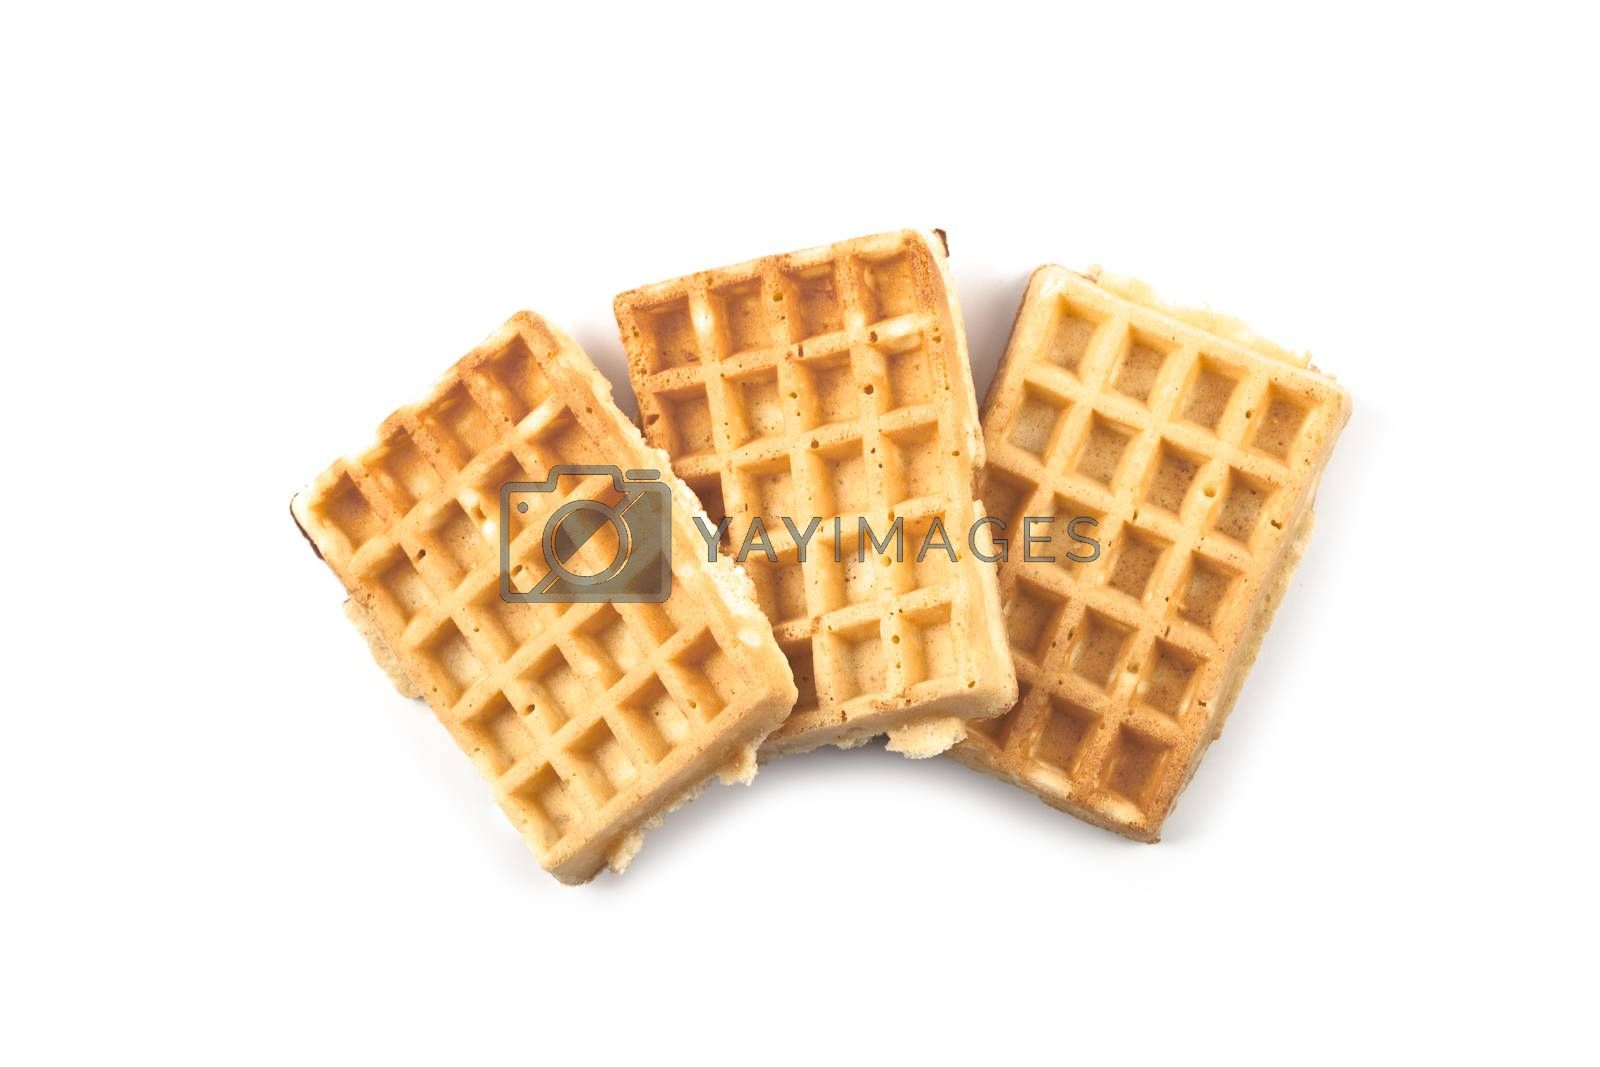 Belgium waffers isolated on white background. Top view of three fresh baked wafers.